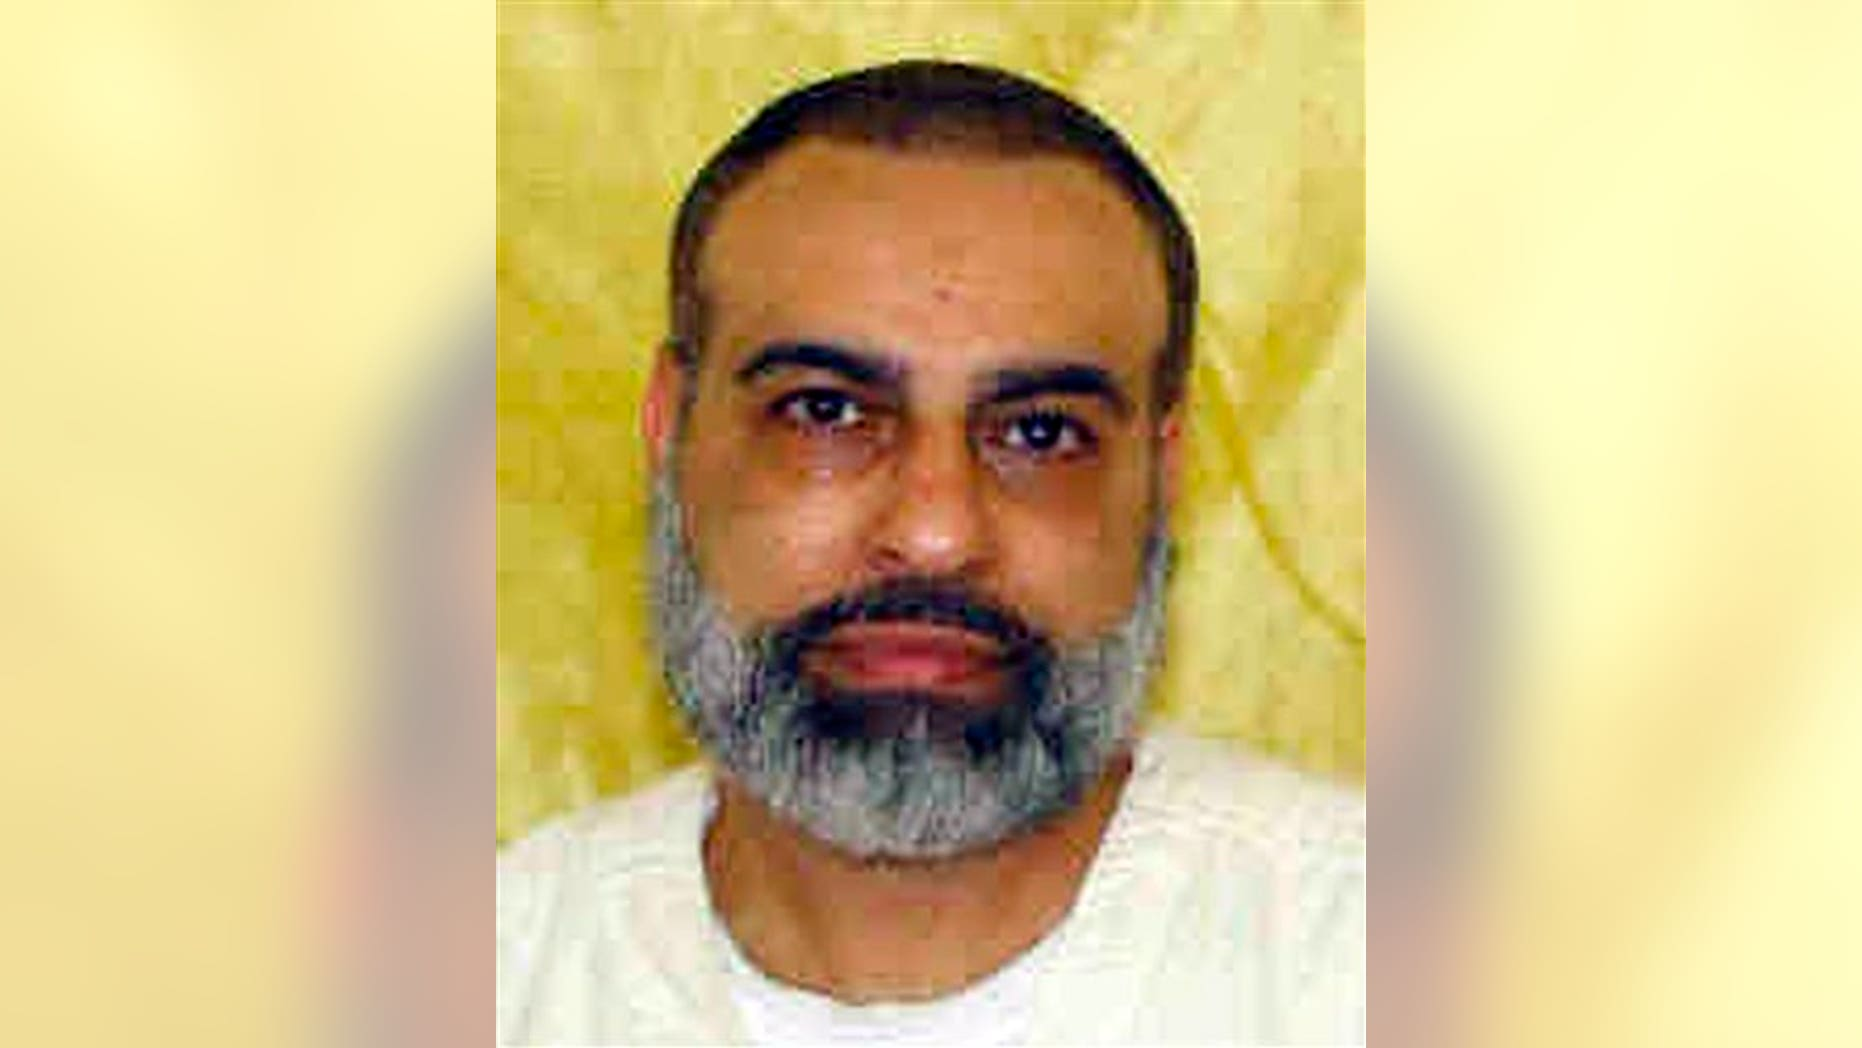 This undated file photo shows Abdul Awkal, convicted in the 1992 slayings of his estranged wife and brother-in-law at a courthouse in Cleveland's Cuyahoga County.